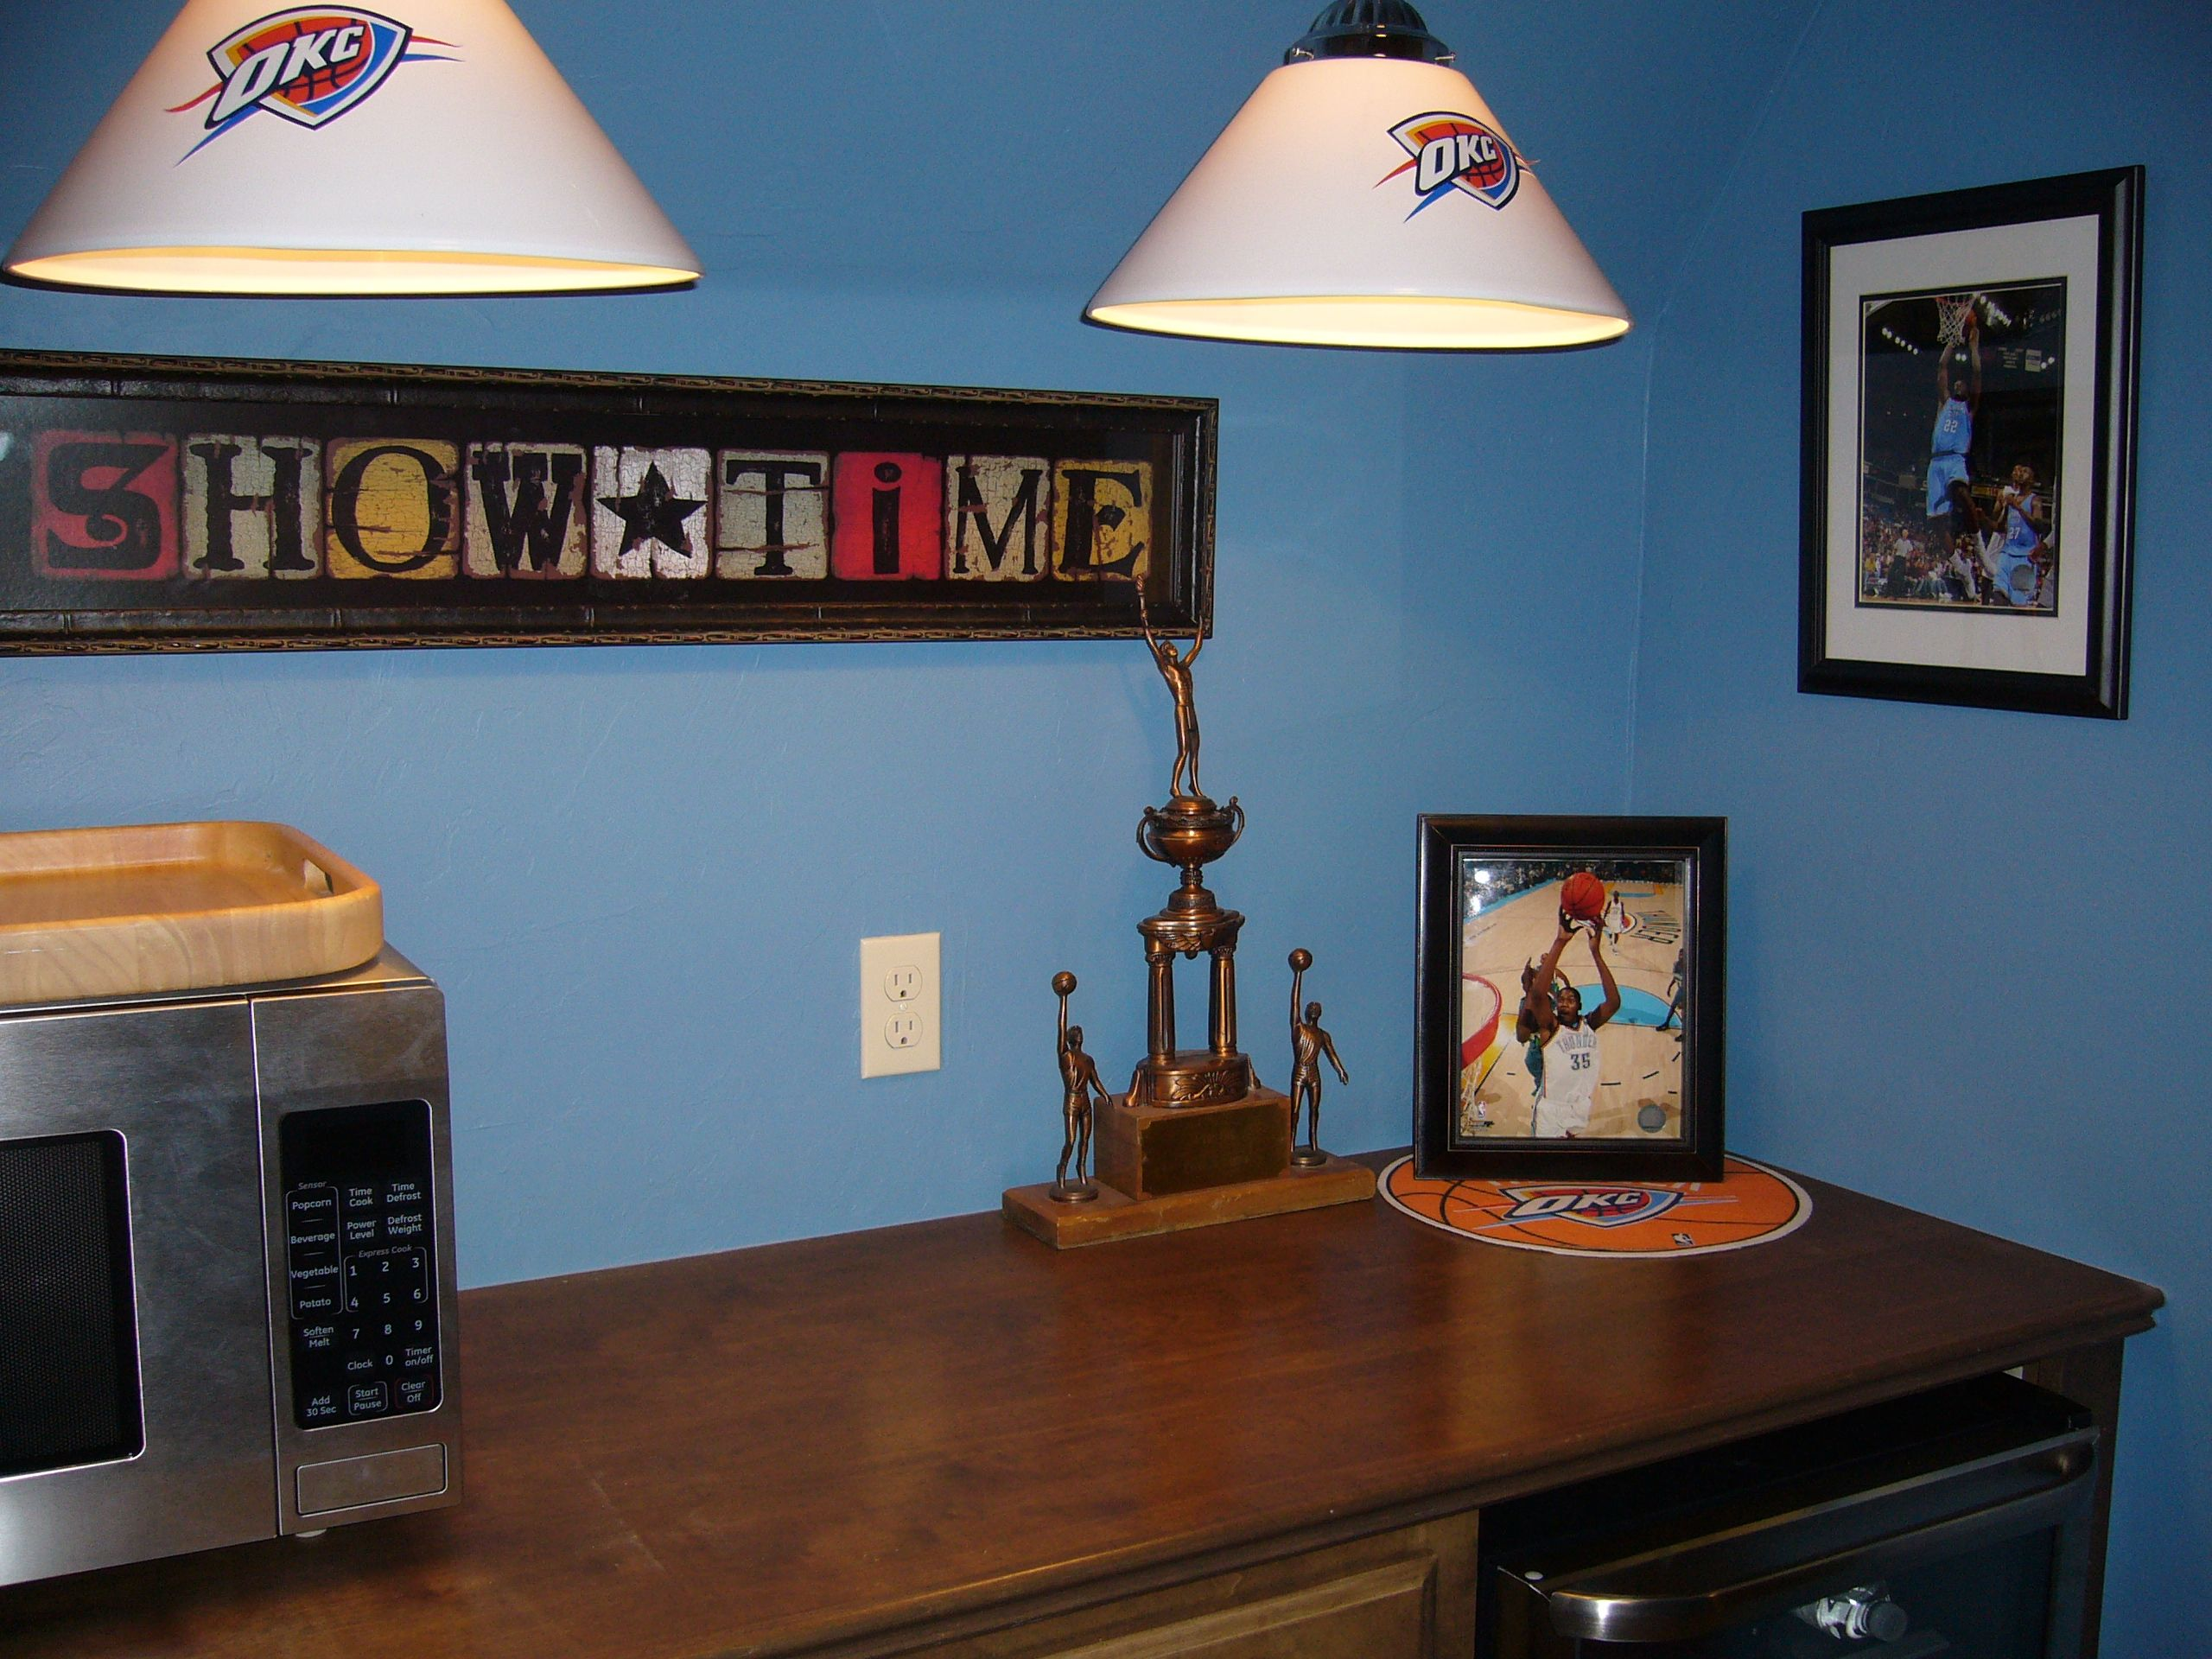 Okc Thunder Bedroom Decor Okc Thunder Bedroom Decor Pictures A1houstoncom